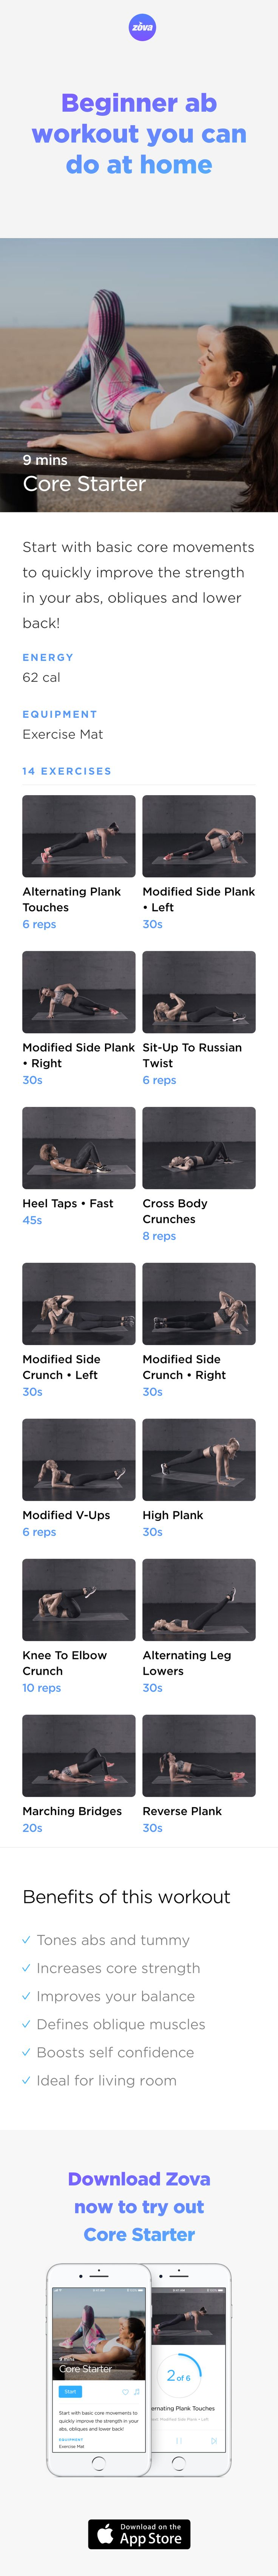 If you're on a mission to tone up your abs and tummy, the good news is that your lost abs can be found again with the right workout. And this simple bodyweight workout will help you get started with 14 exercises that tone and strengthen your abs and lower back. #abs #workout #fitness